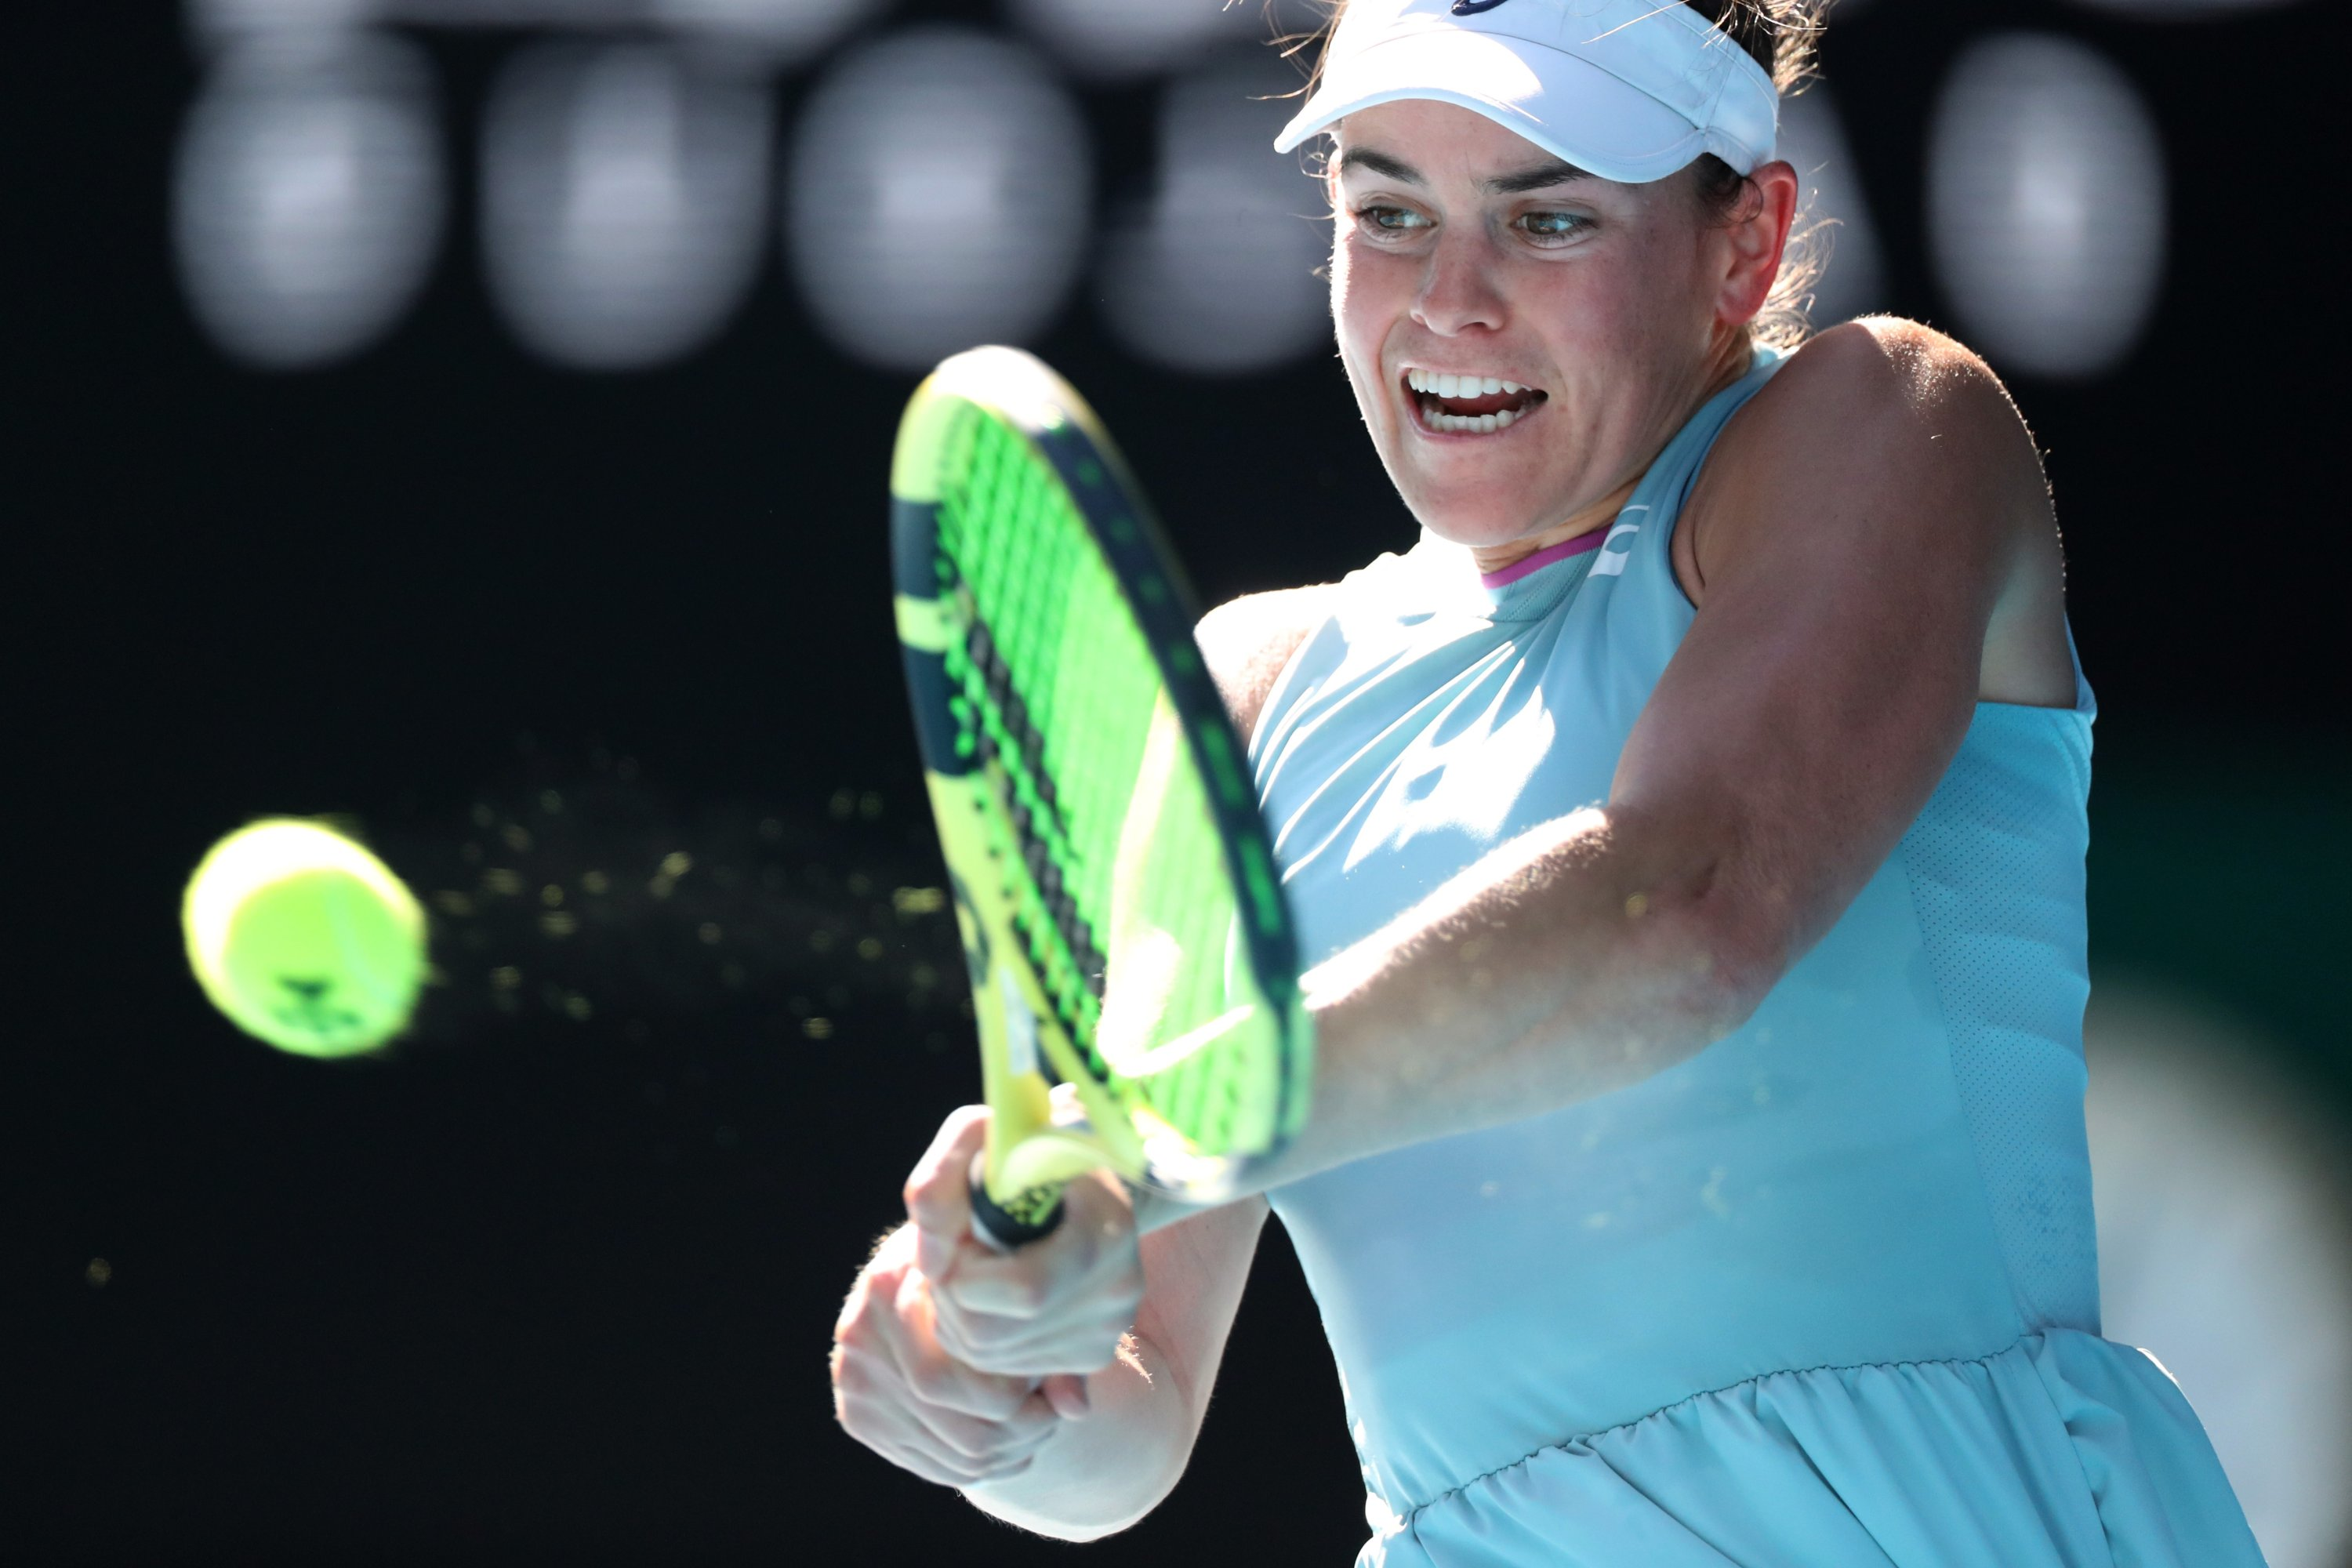 U.S.' Jennifer Brady in action against Czech Republic's Karolina Muchova during their Australian Open women's singles semifinal in Melbourne, Australia, Feb. 18, 2021. (Reuters Photo)